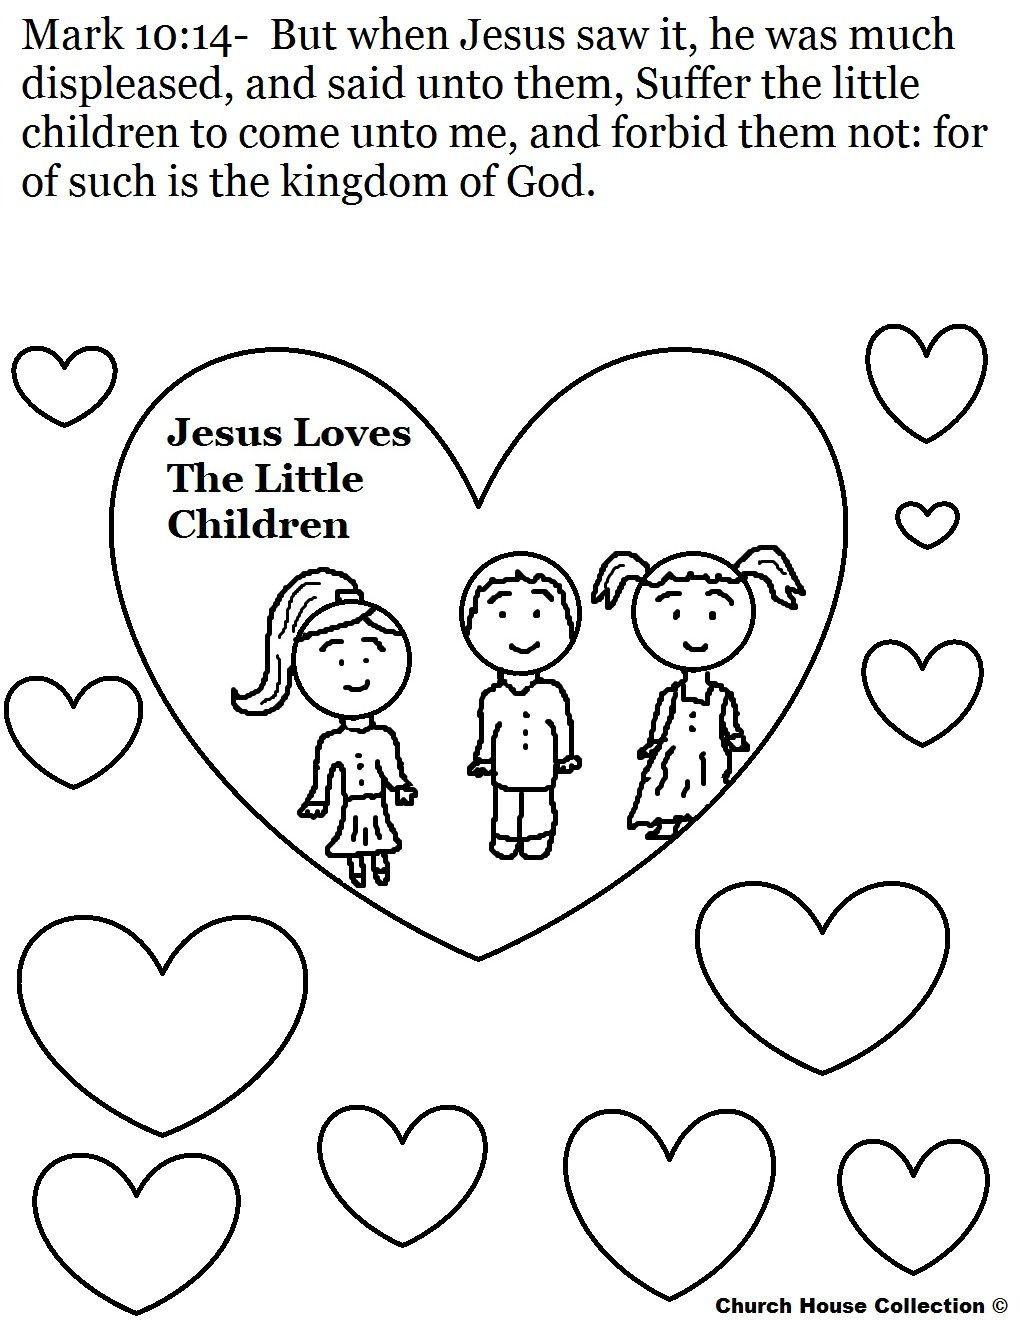 Jesus loves the little children Coloring Page.jpg 1,020